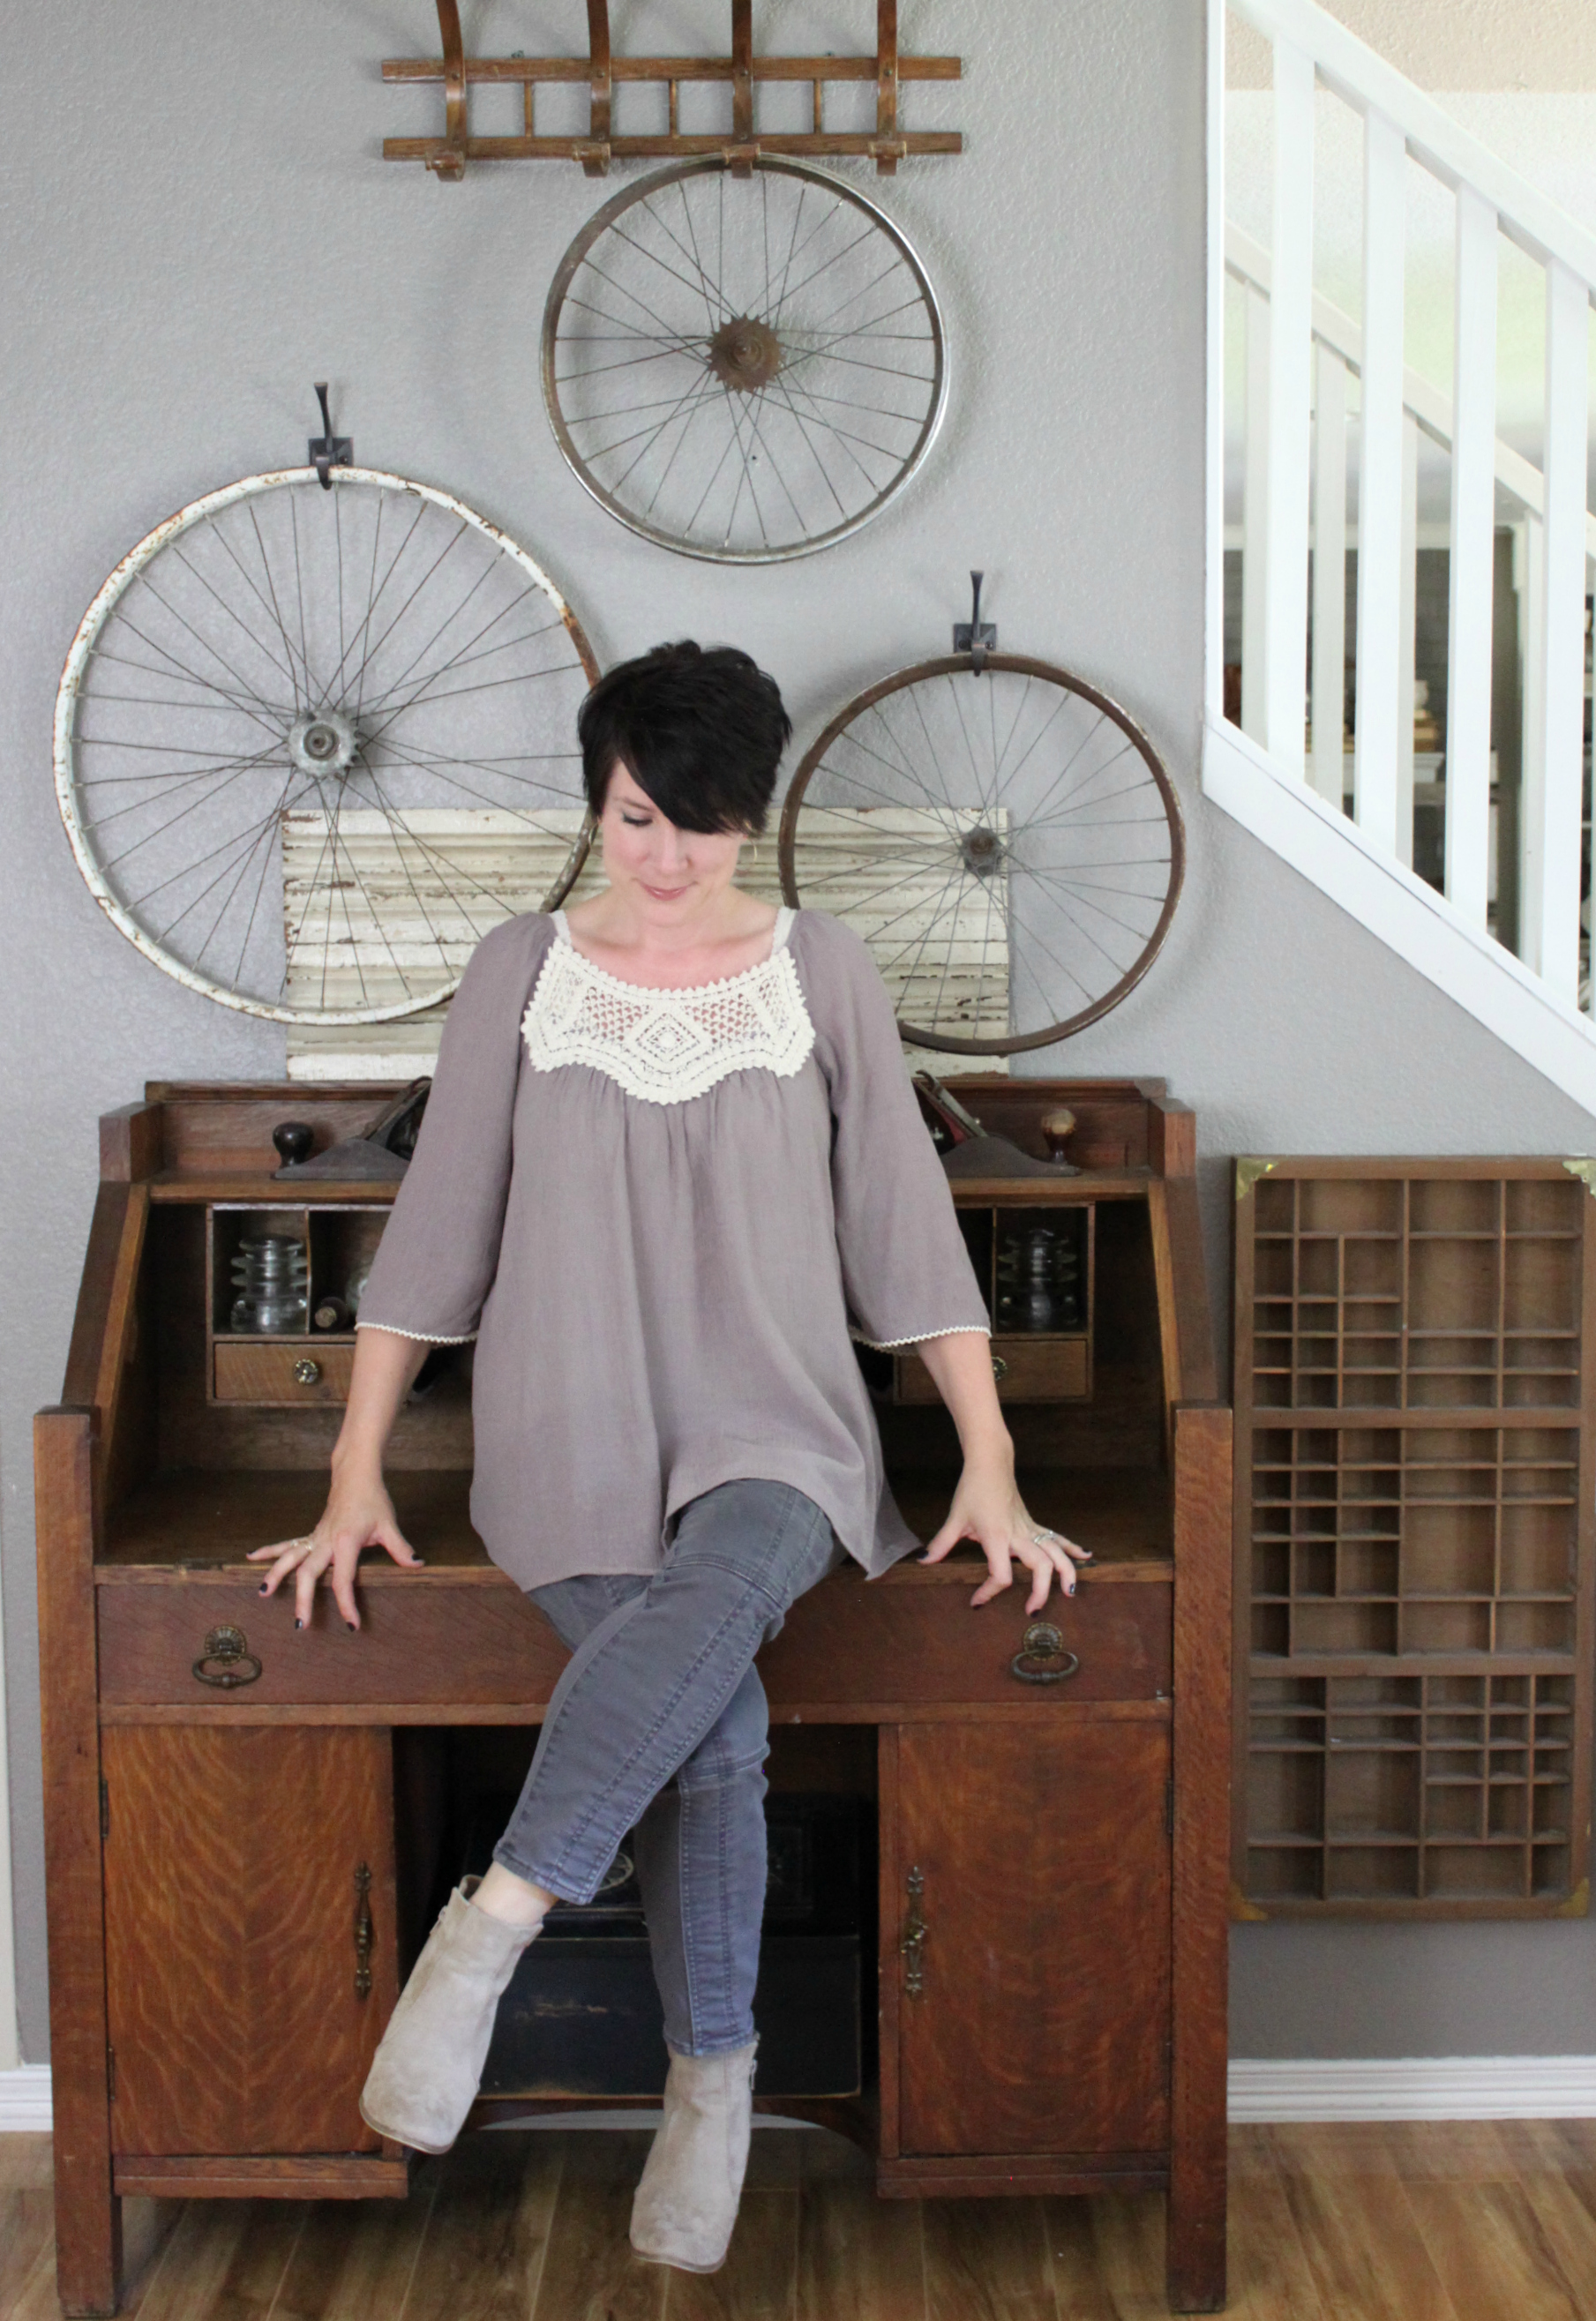 peasant-top-desk-outfit-bicycle-wheels